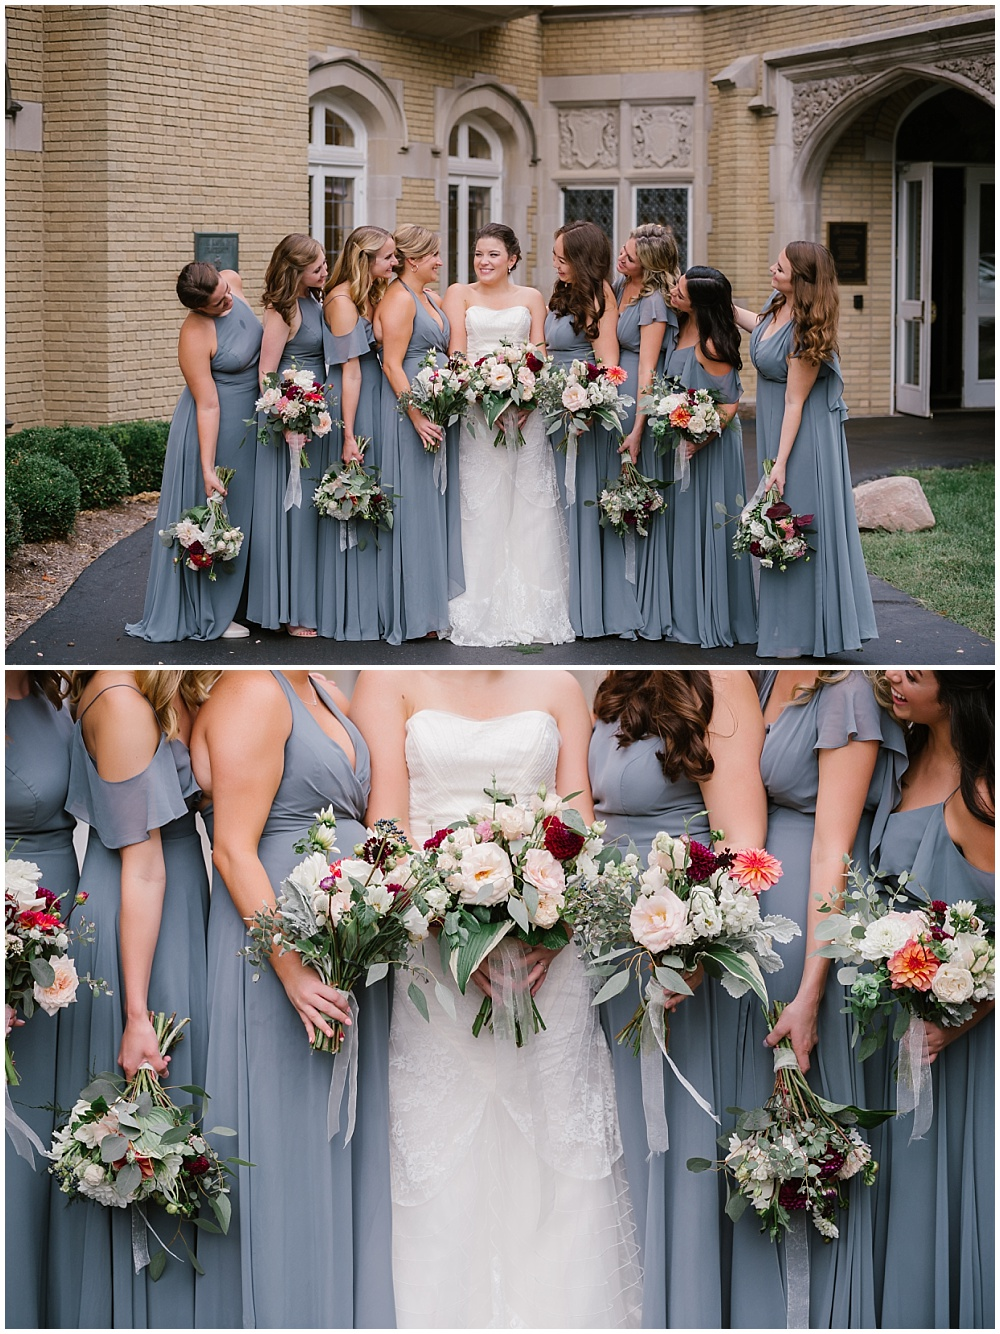 Gorgeous fall bridal bouquets with burgundy blooms accented the Jenny Yoo bridesmaid dresses beautifully! Fall Indianapolis wedding at Laural Hall with a gorgeous fall wedding color palette and burgundy blooms. | Jessica Dum Wedding Coordination